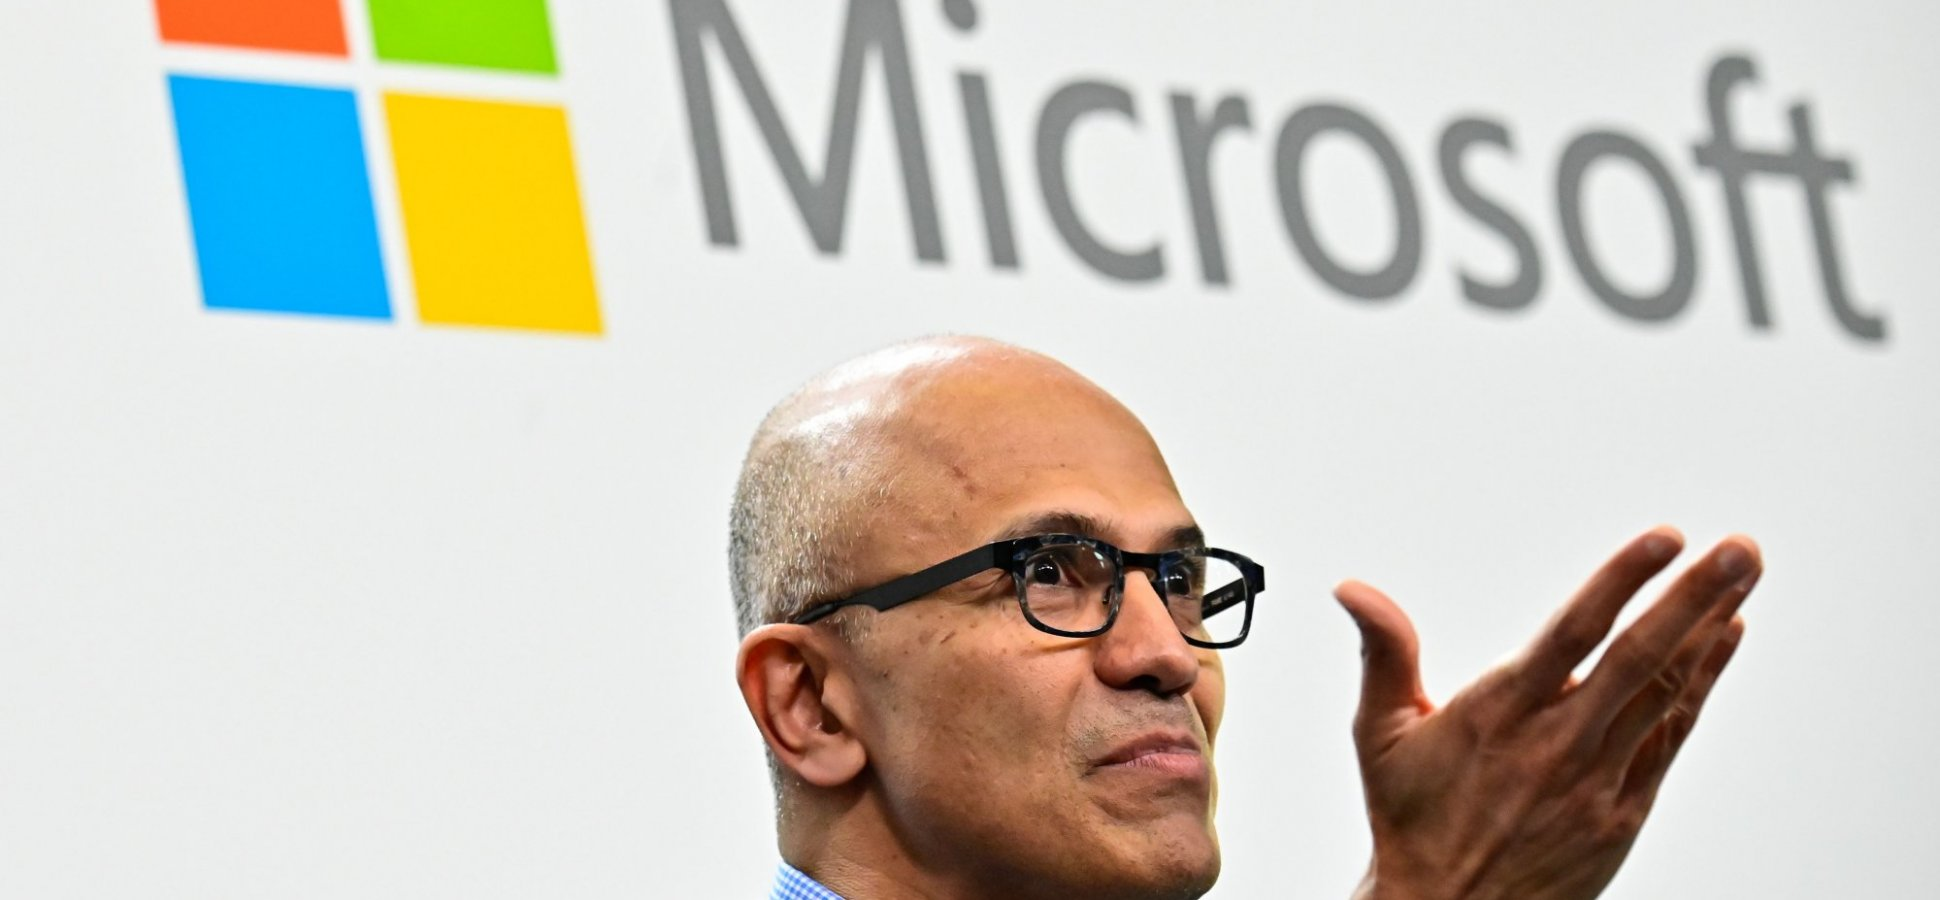 Microsoft Just Announced These Three Cool Things That Will Impact Your Business